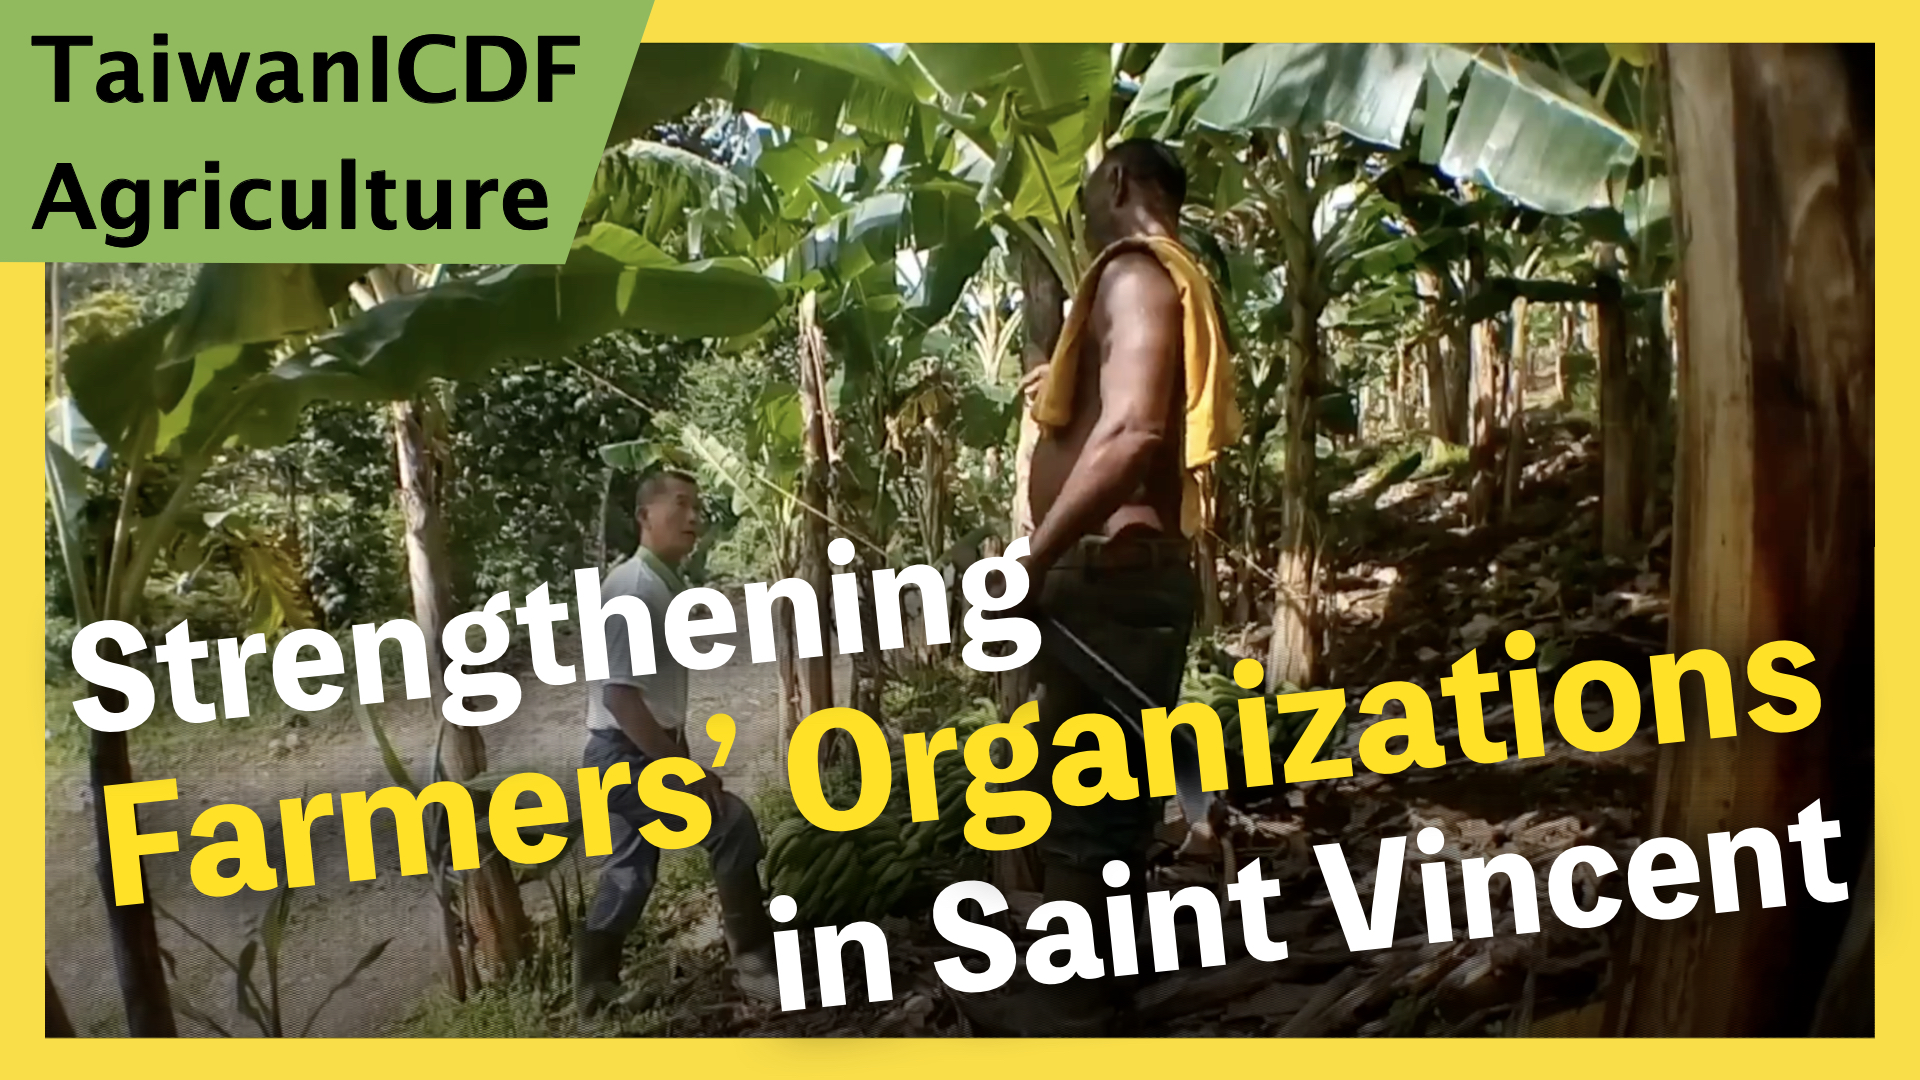 Project for Strengthening Farmers' Organizations in Saint Vincent and the Grenadines